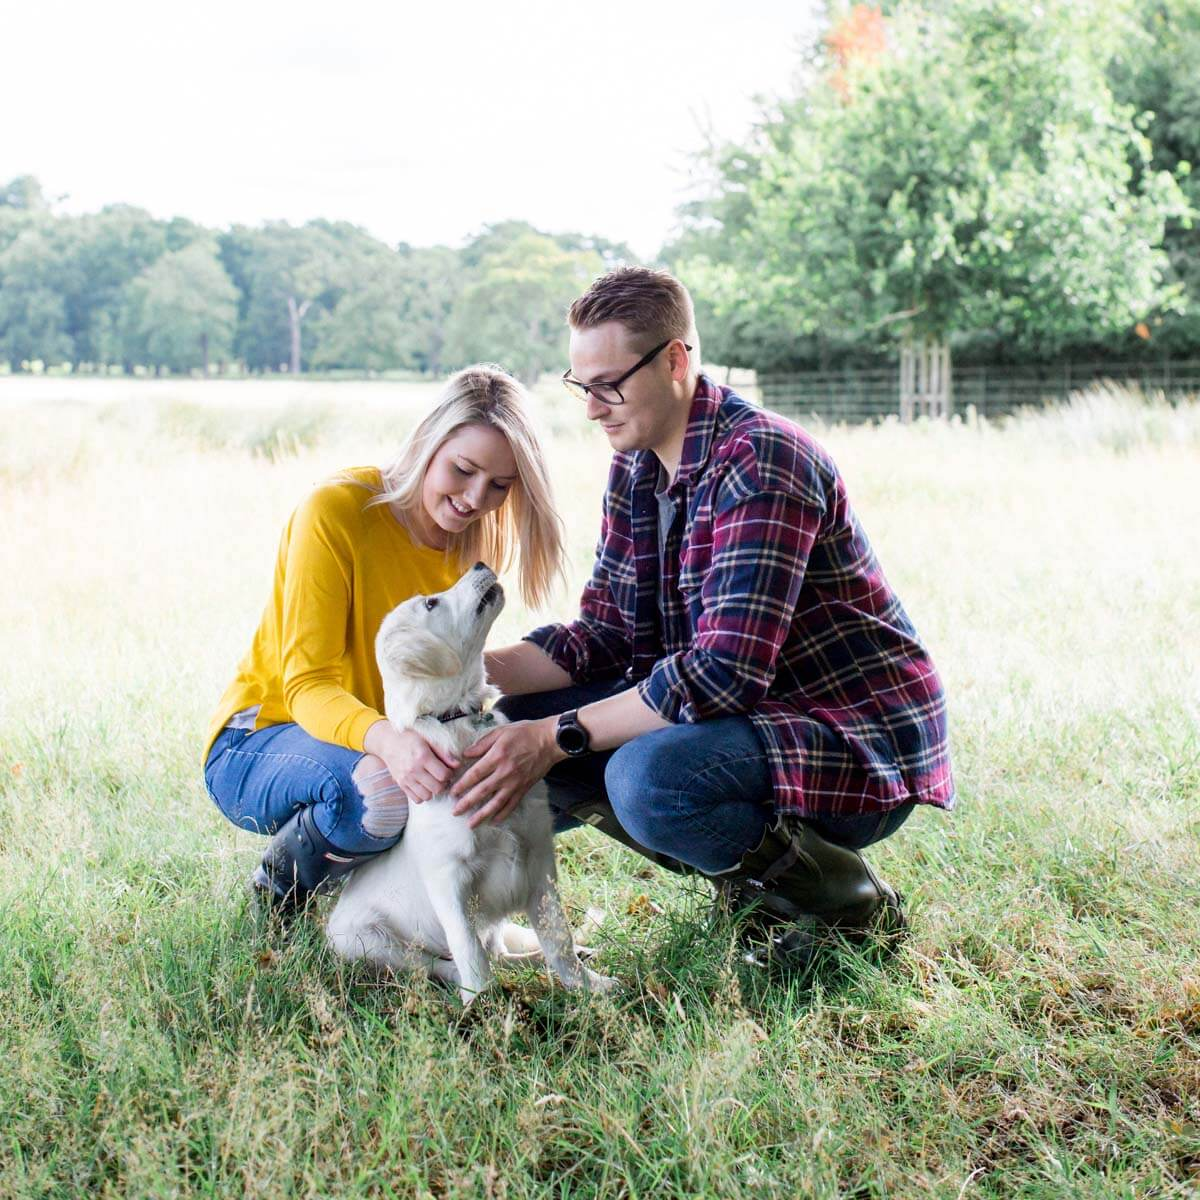 Natural Wedding Photographer | London, Surrey, Hertfordshire & Destination Wedding Photography | Philippa Sian Photography